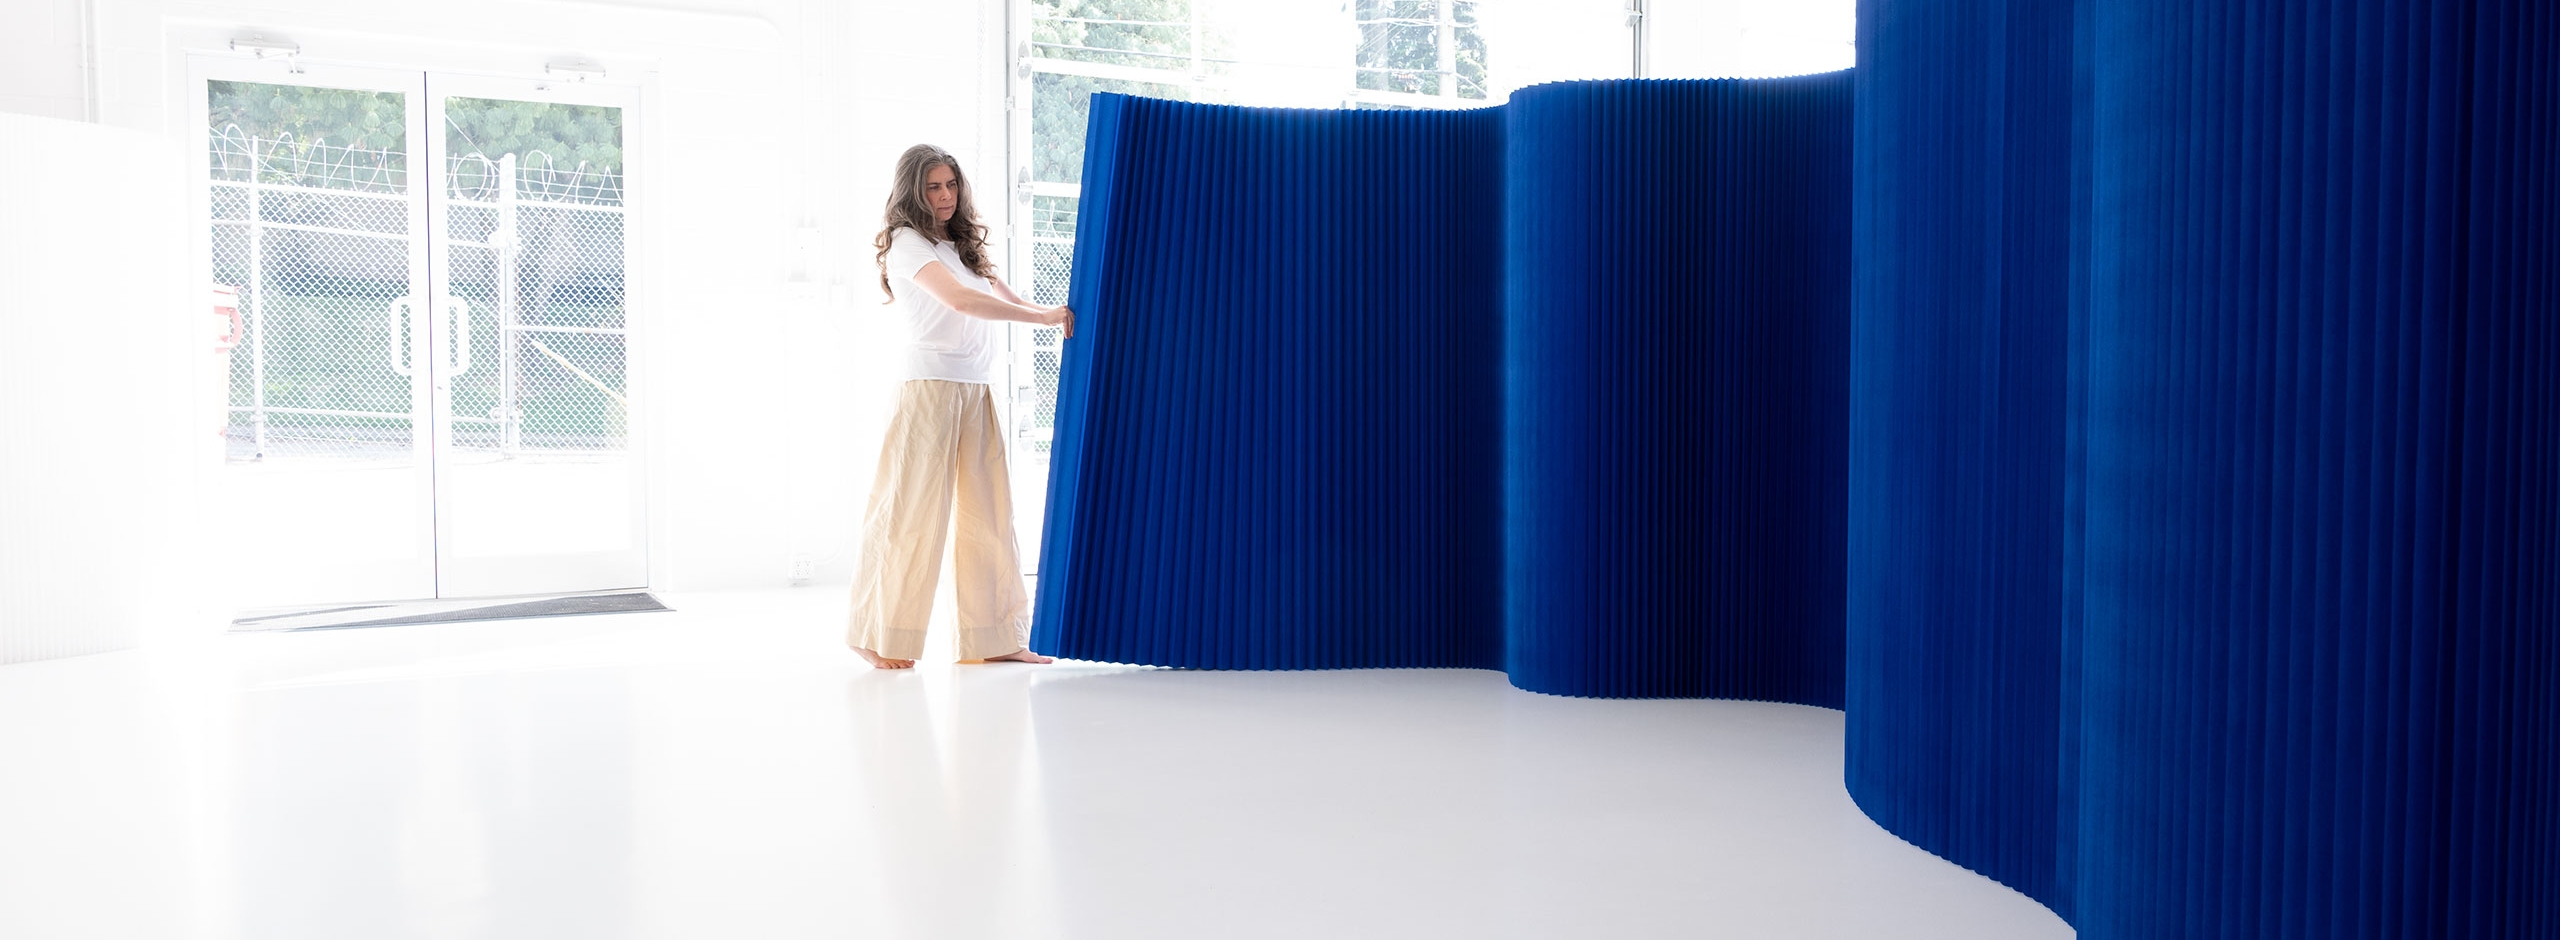 A portable wall used as a space divider or to create dramatic backdrops, the paper softwall by molo is a freestanding partition that does not require hardware.